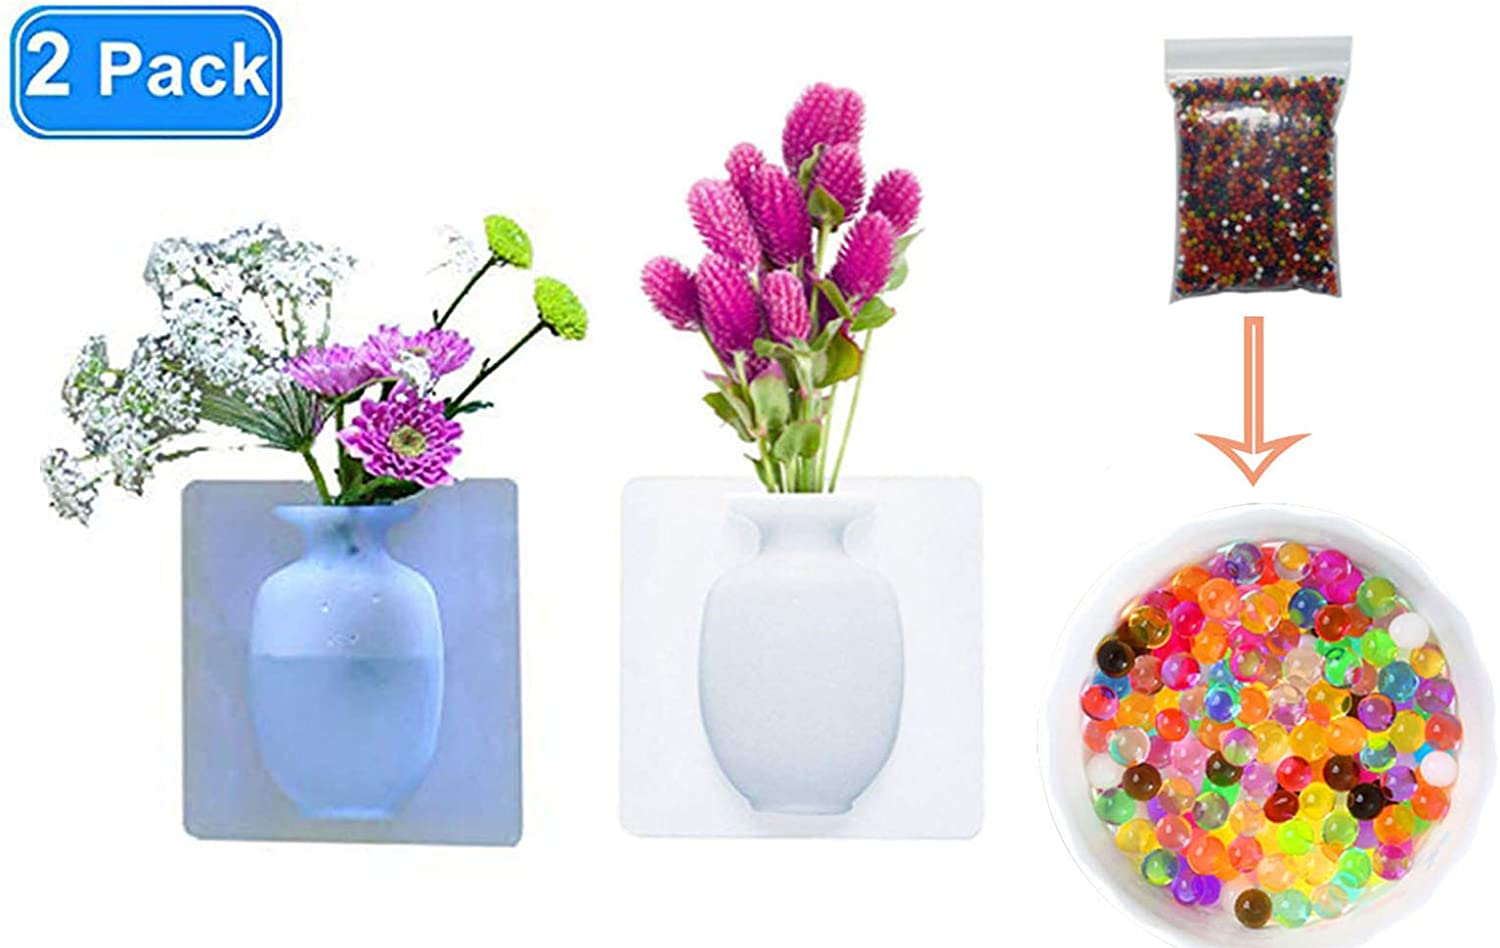 smylls Silicone Flower Vase Removable Self-Adhesive Wall Mount Vase for Wedding Festival Party Home Office Decoration